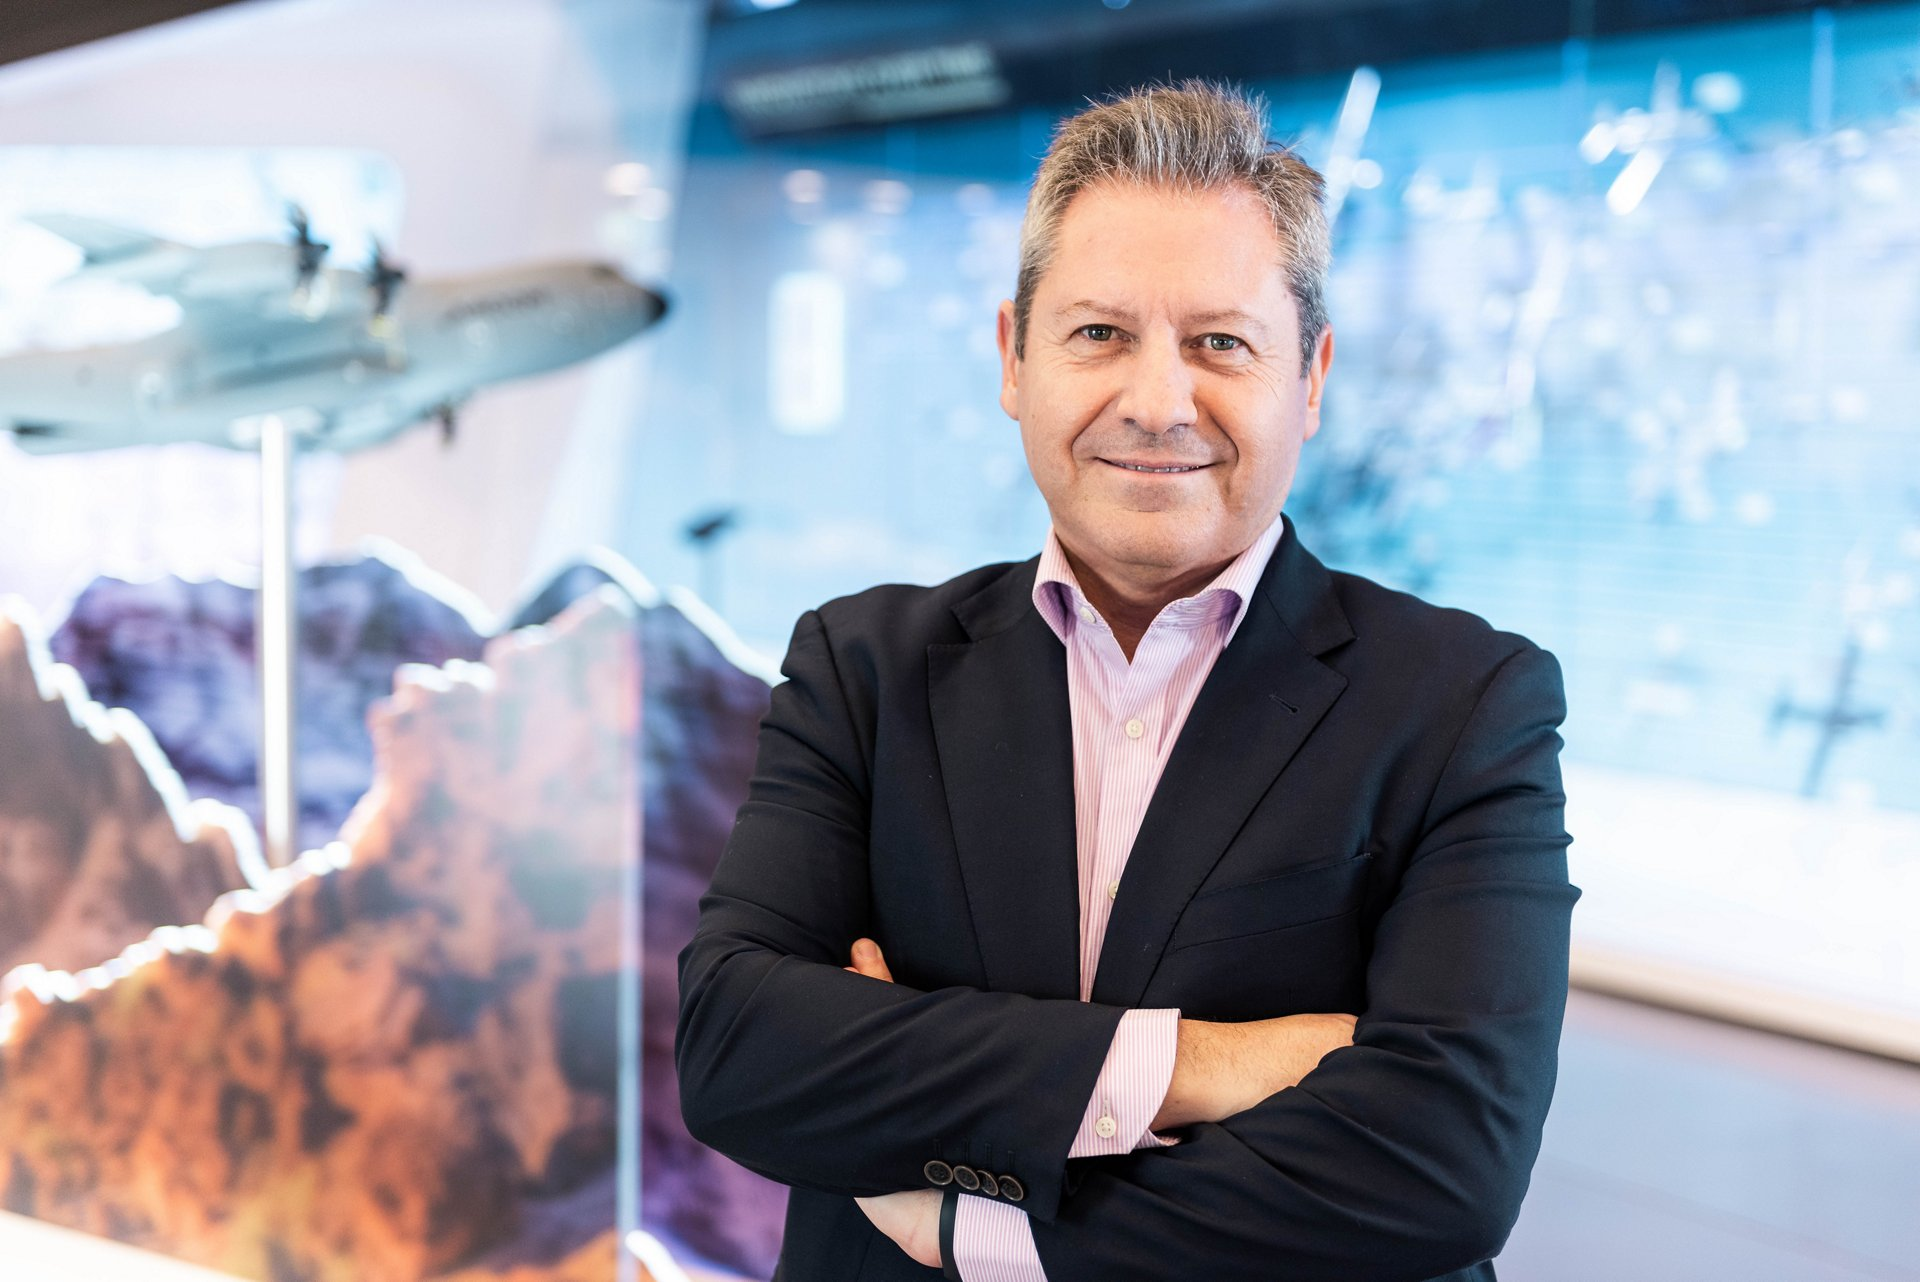 Alberto Gutiérrez appointed Head of Military Aircraft at Airbus Defence and Space